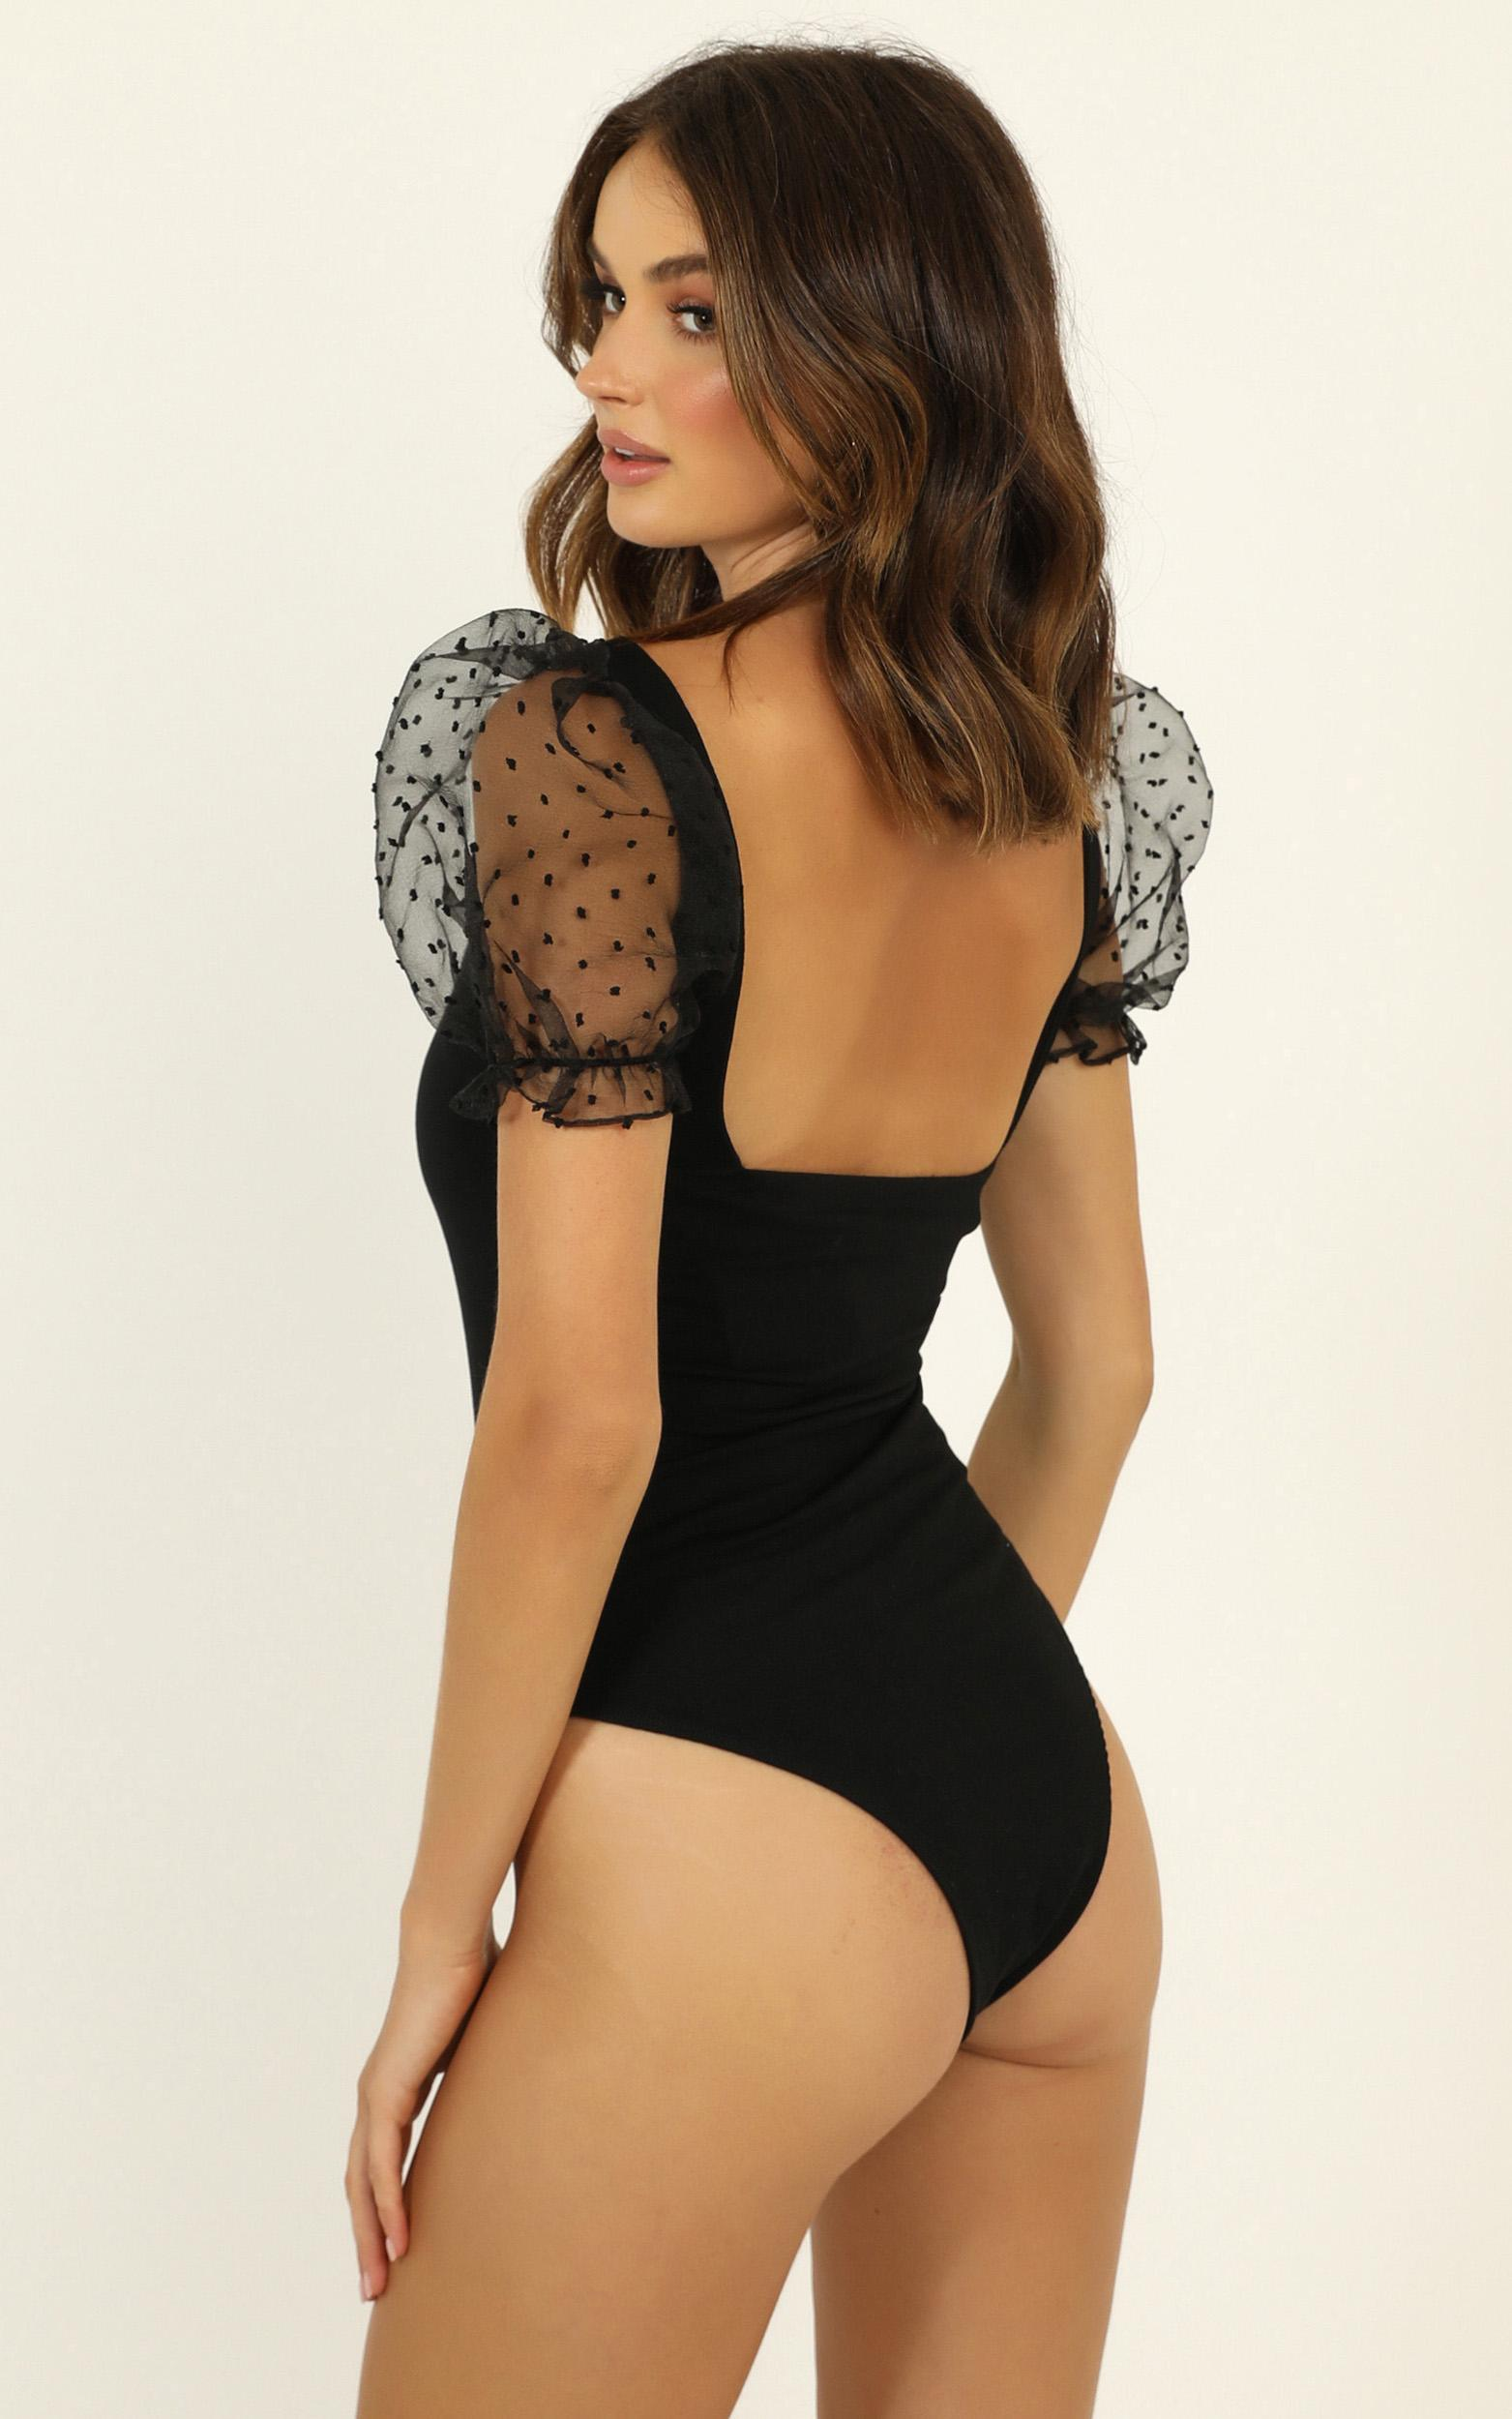 Kiss Me Quickly Bodysuit In black - 20 (XXXXL), Black, hi-res image number null